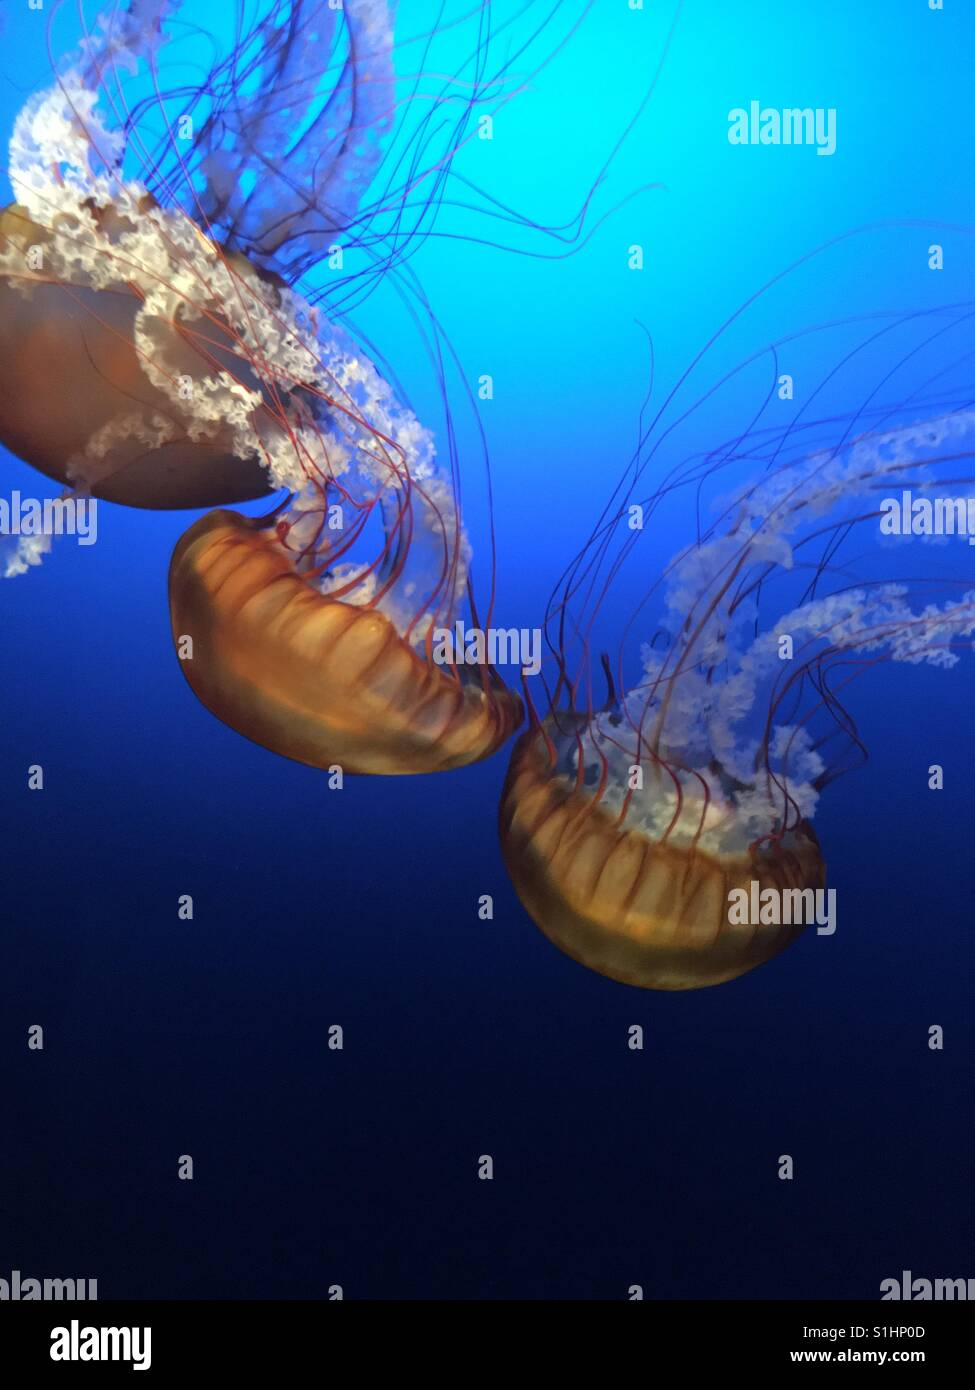 Jellyfish colors - Stock Image